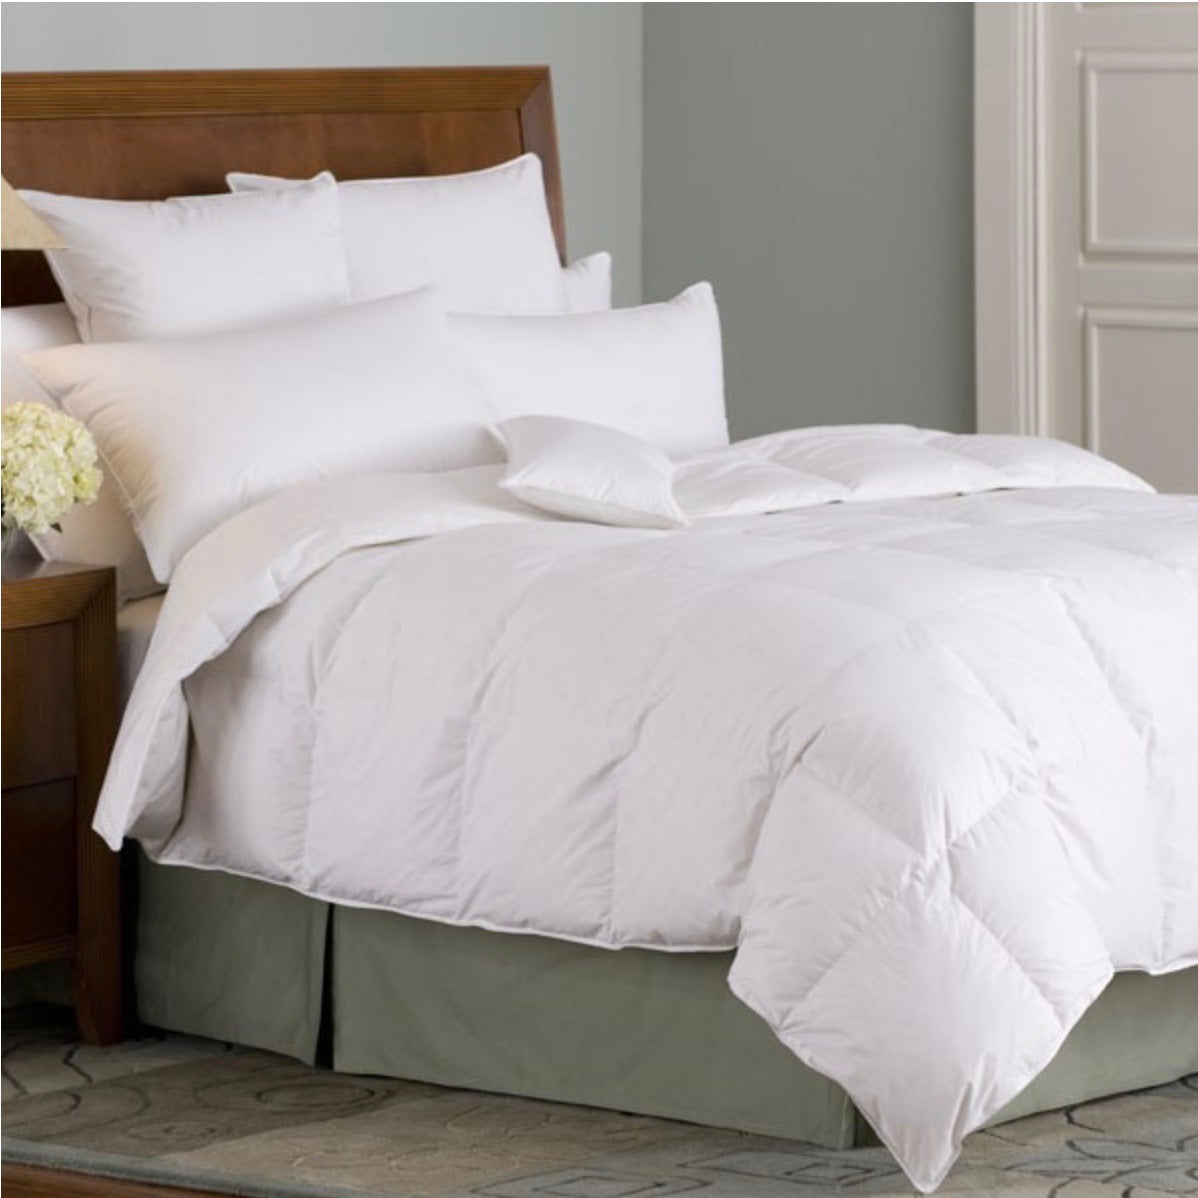 Organa 650 Fill White Goose Down Comforter - Maisonette Shop